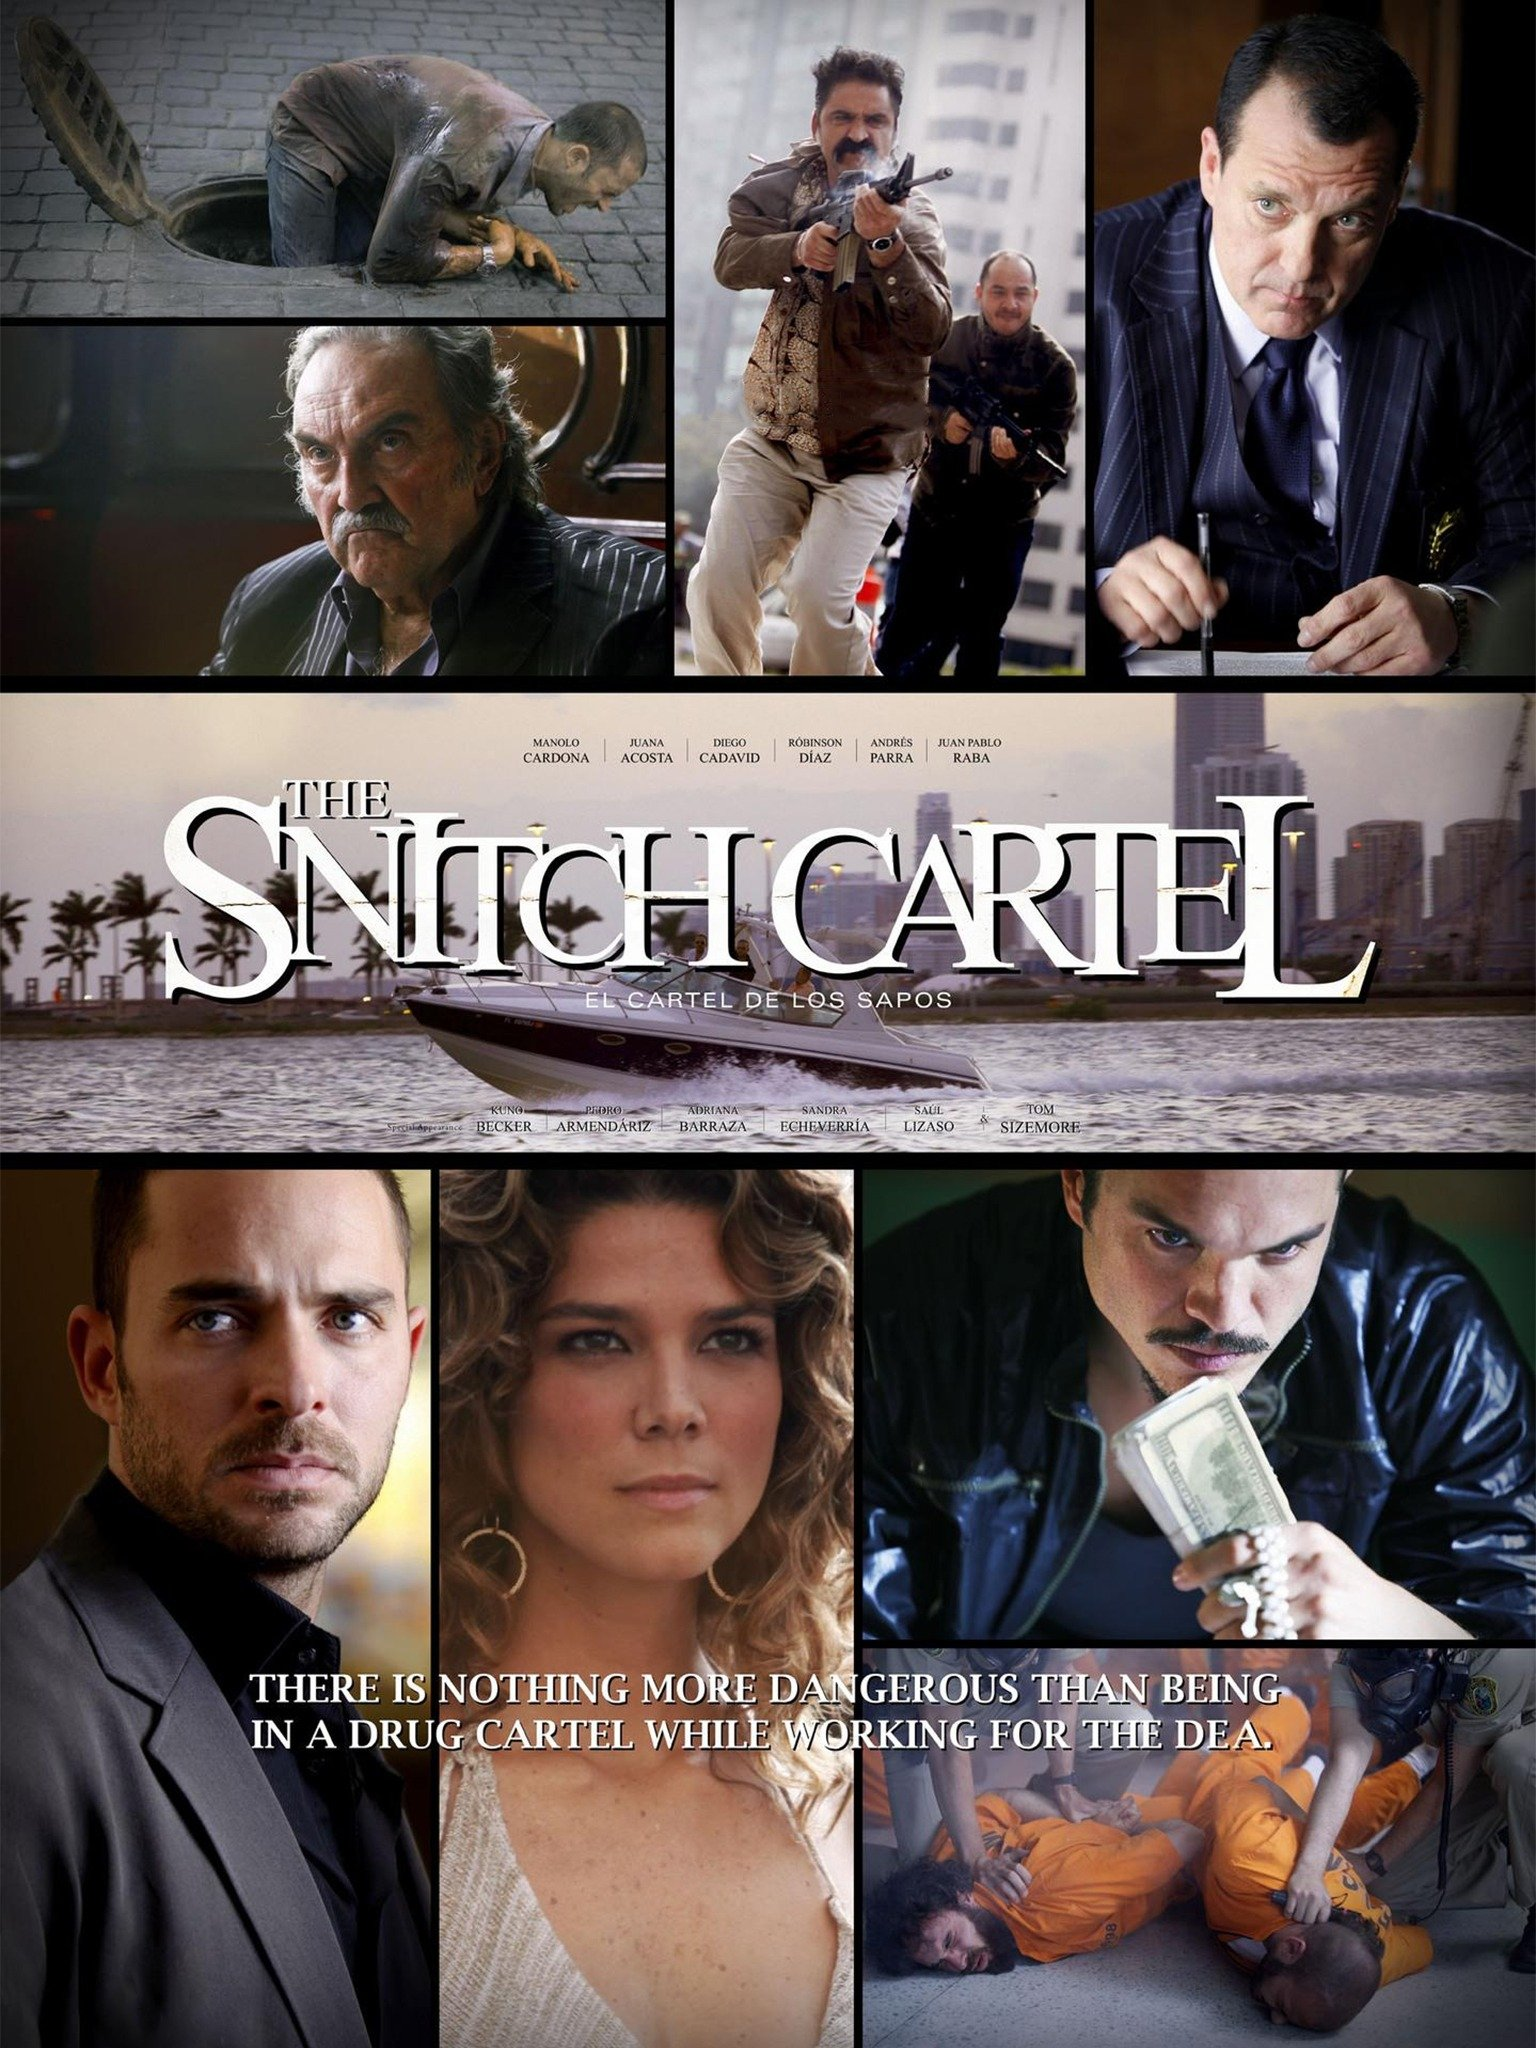 El cartel de los sapos (The Snitch Cartel)